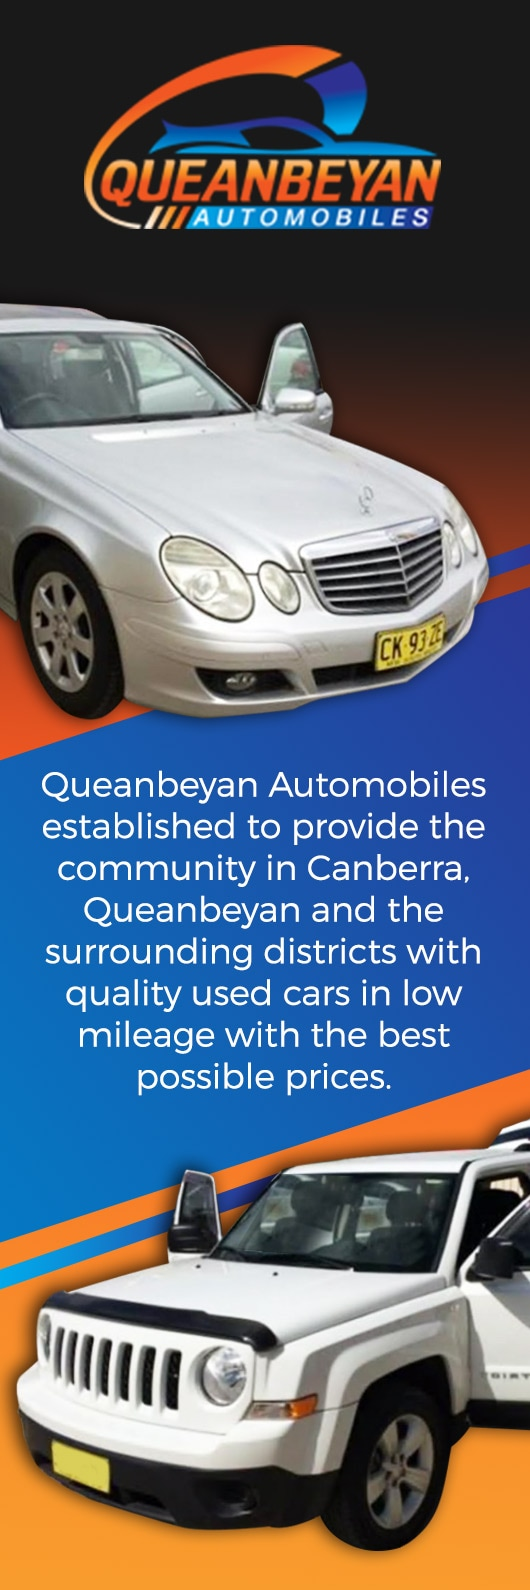 Queanbeyan Automobiles - Used Cars - Cnr Uriarra Rd